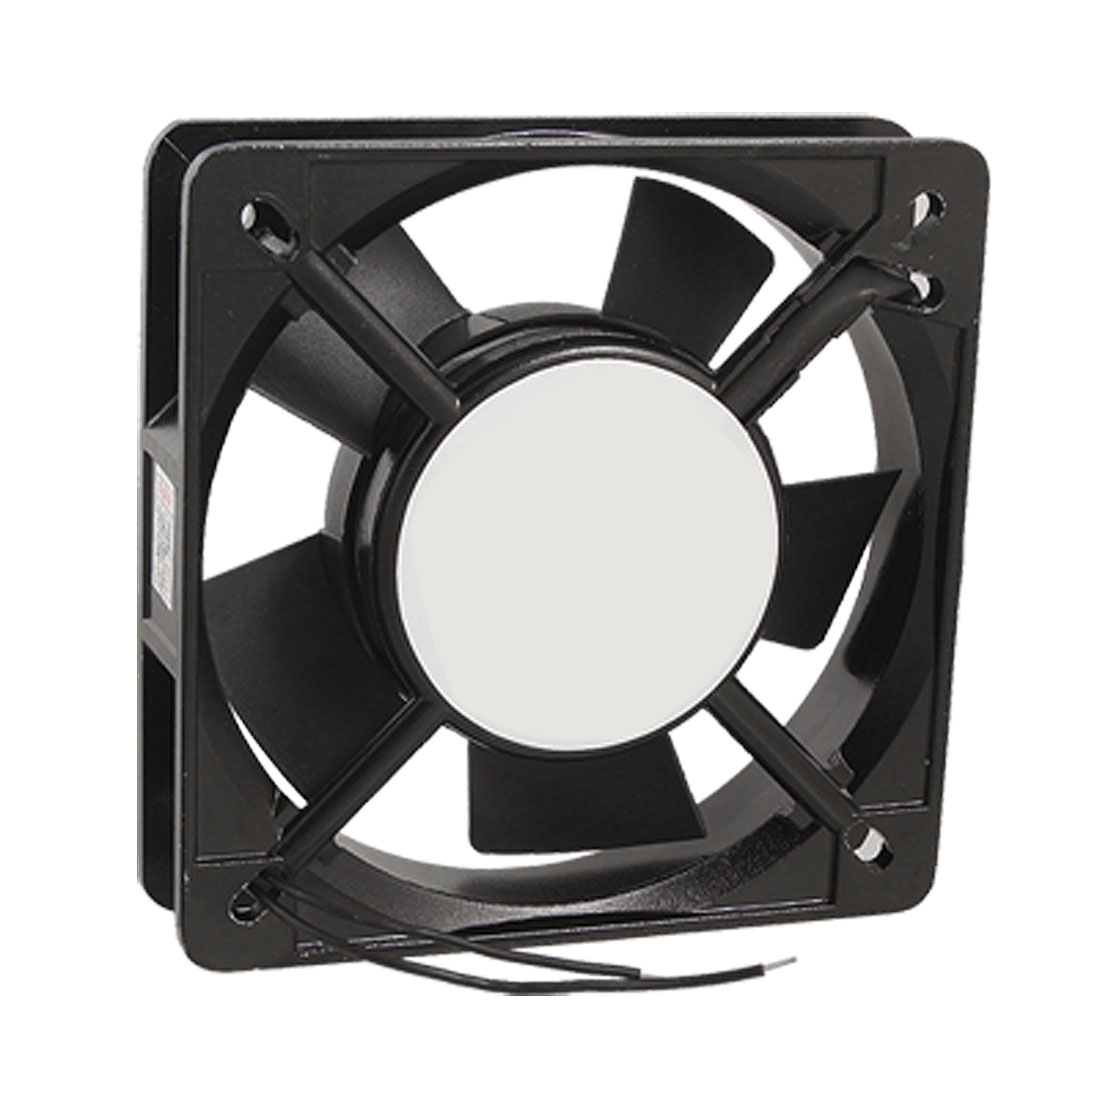 110 x 110 x 25mm 0.1A AC 220-240V 2 Wire Axial Cooling Fan